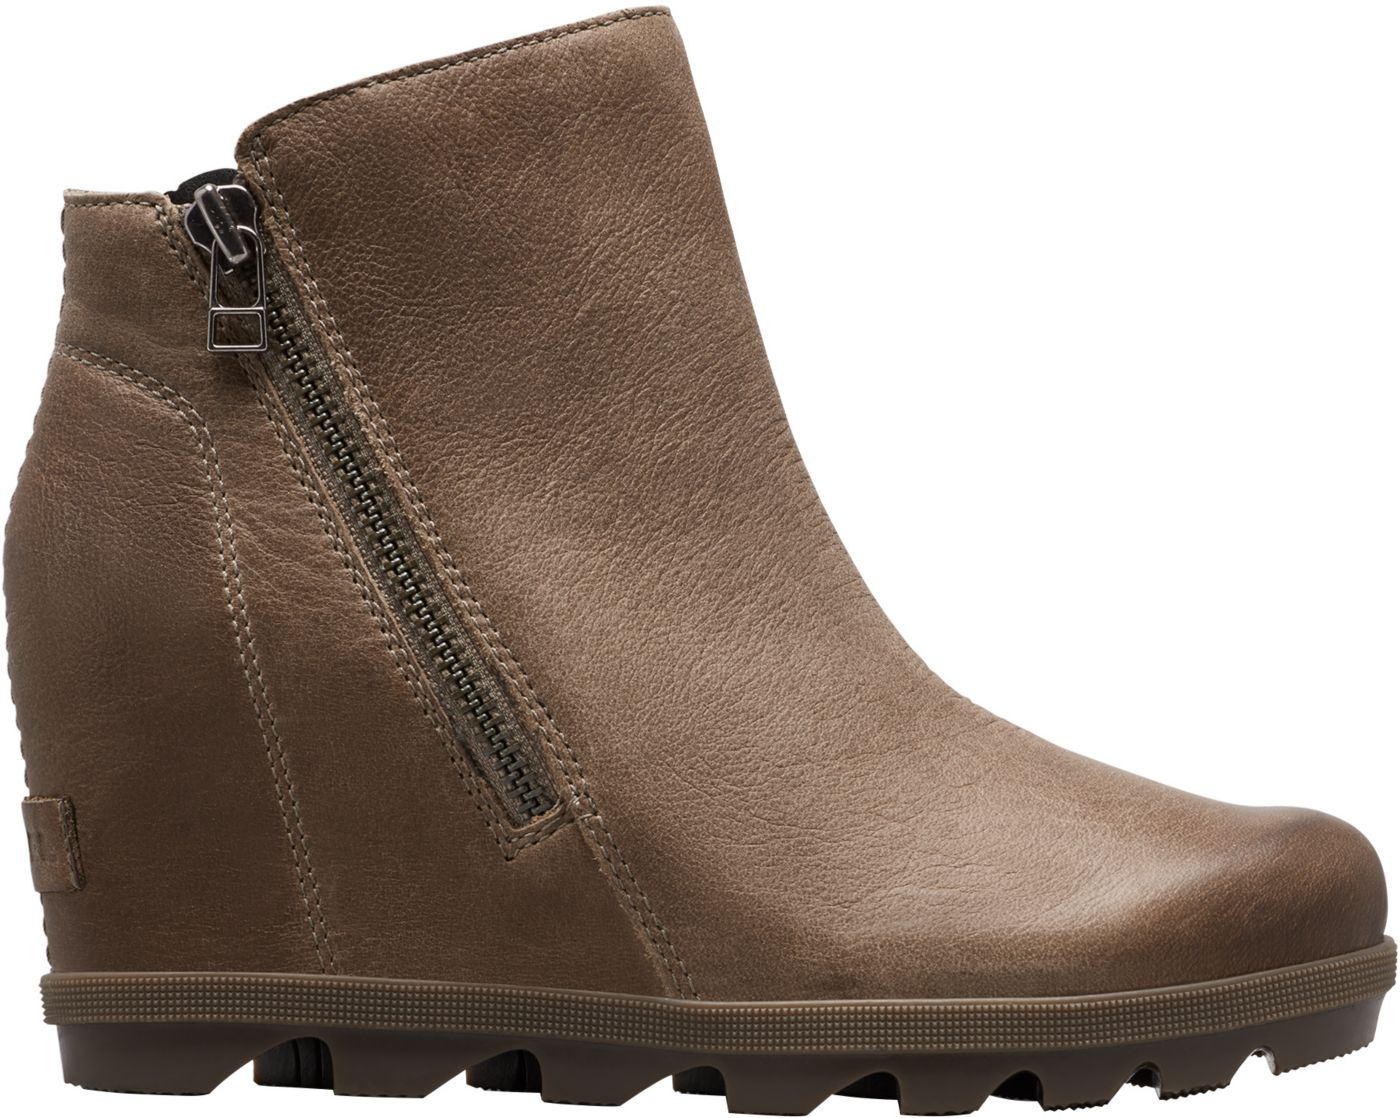 SOREL Women's Joan of Arctic Wedge II Zip Boots